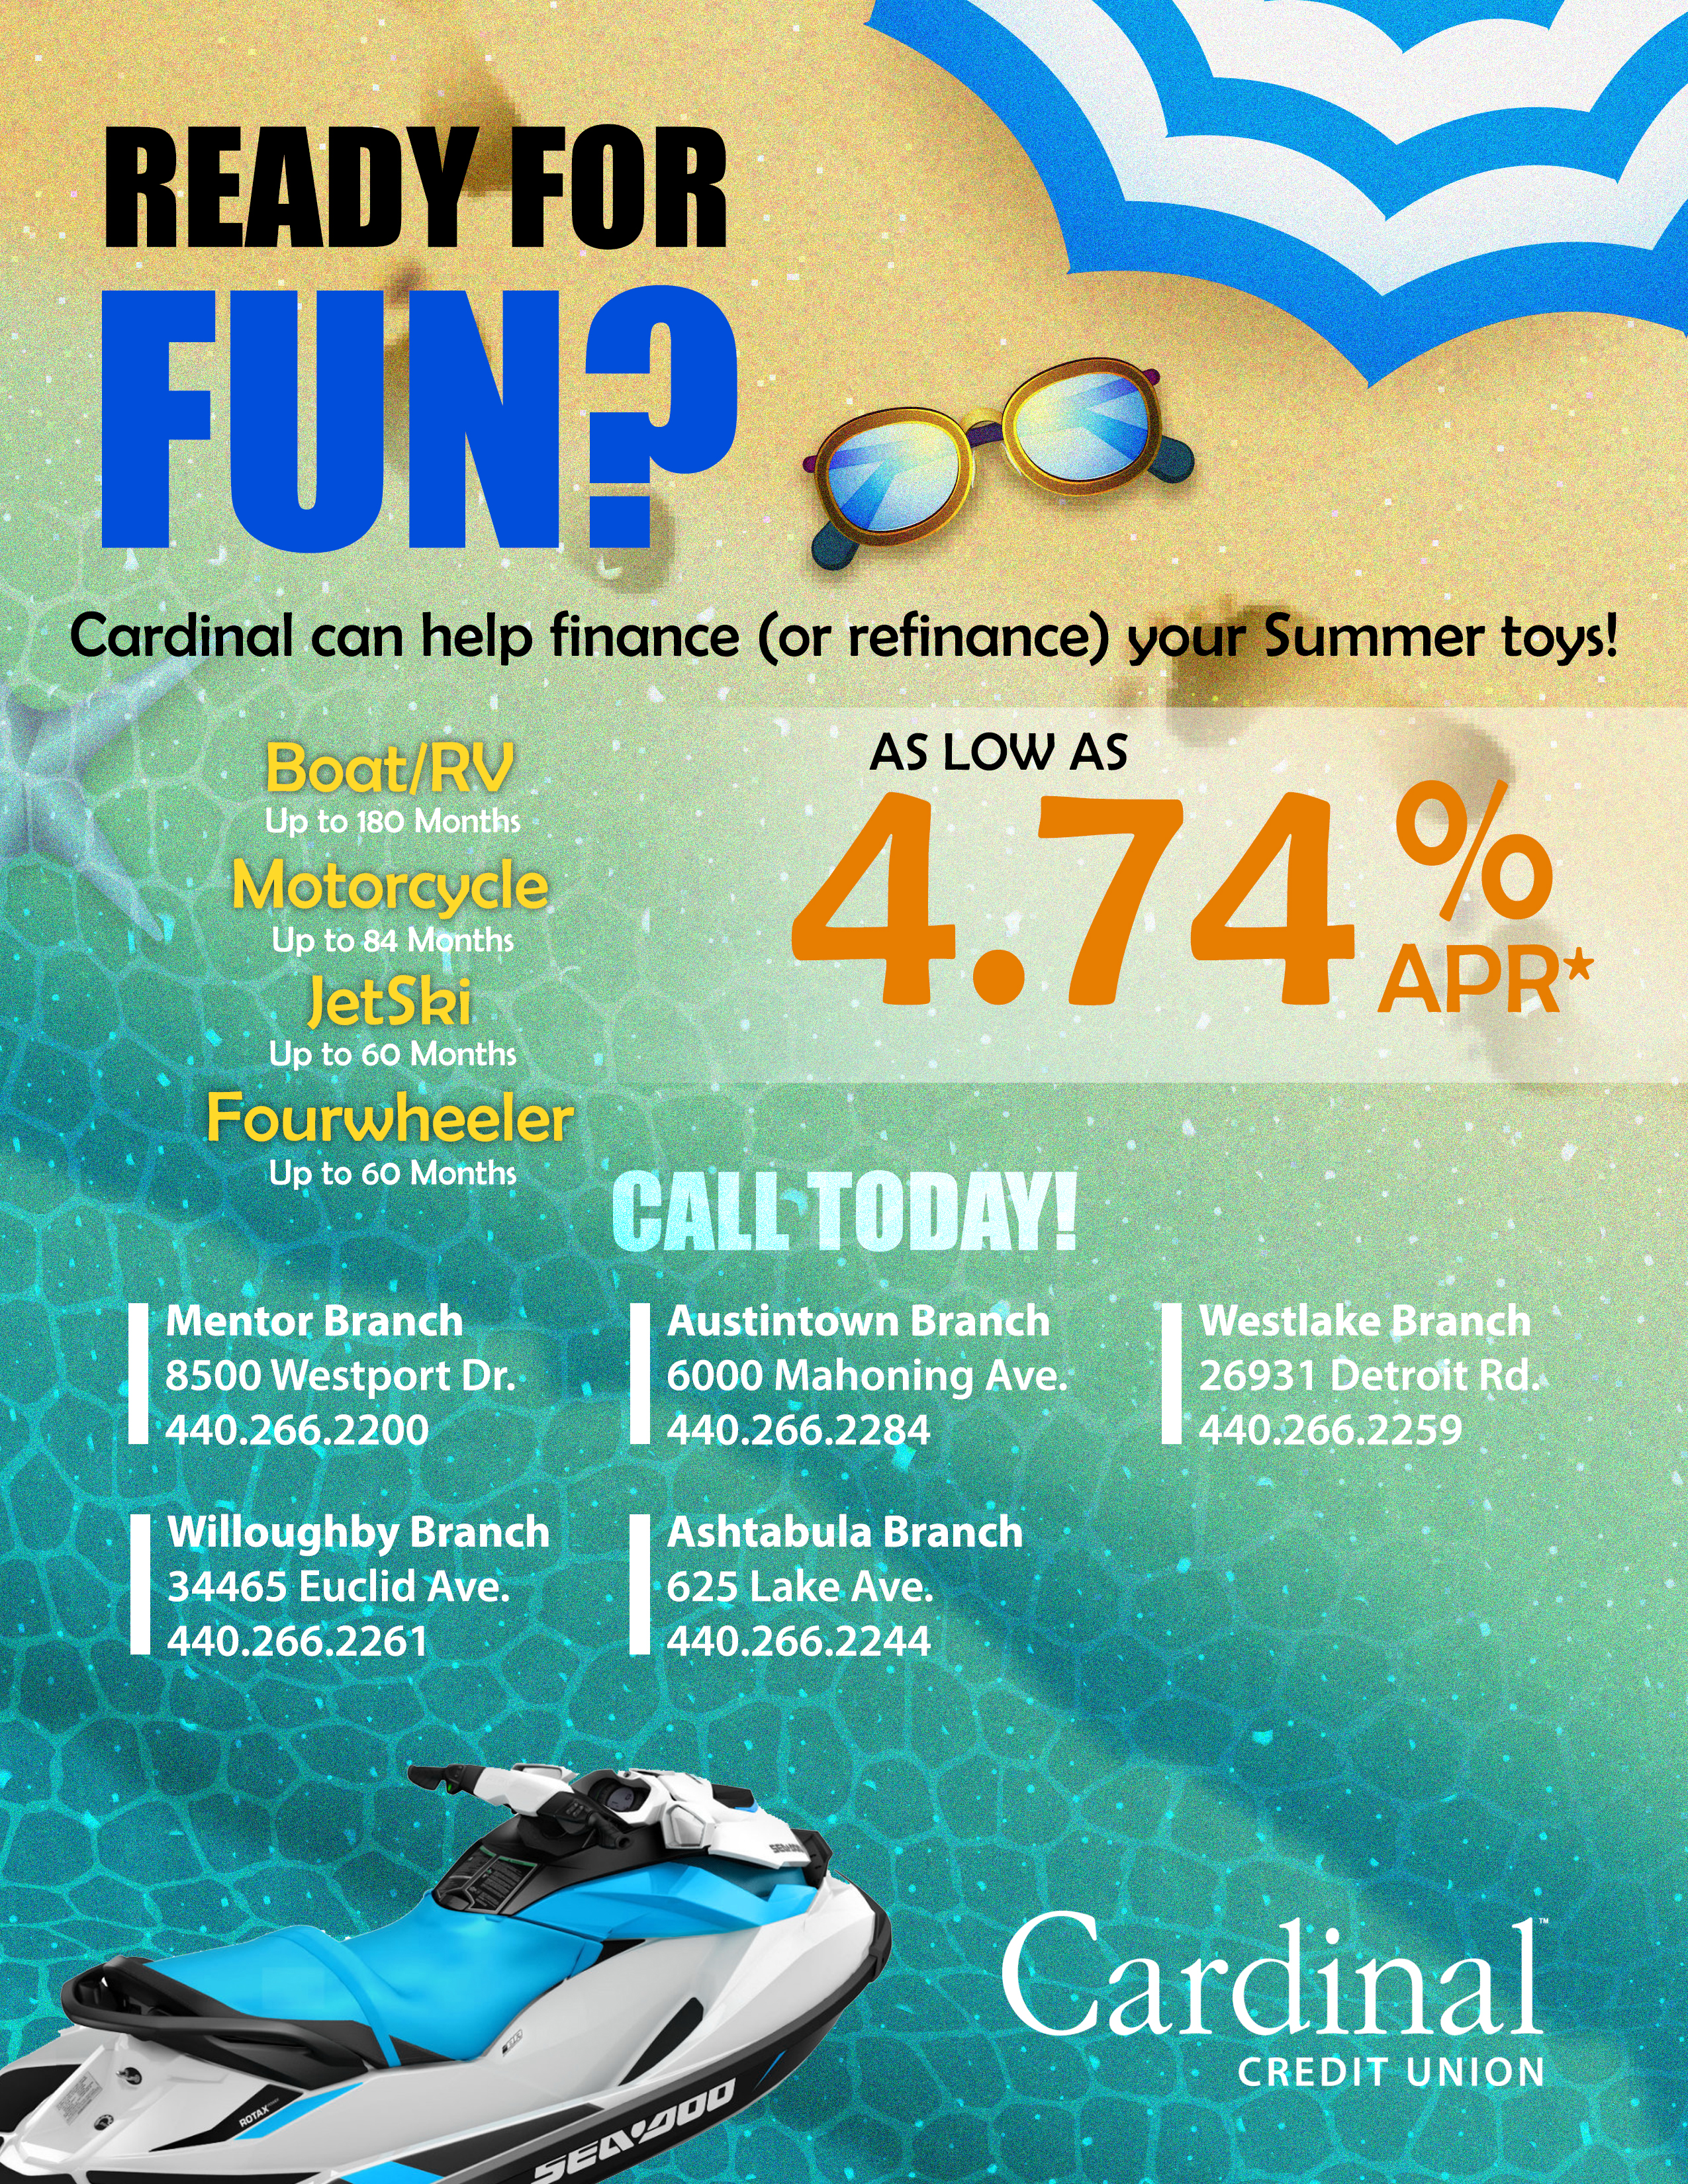 Ready for FUN? Cardinal can help finance or refinance your summer toys. Boats, RVs, Motorcycles, JetSkis, Fourwheelers, you name it! Call us today at 440 266 2200 for the best loans in town!